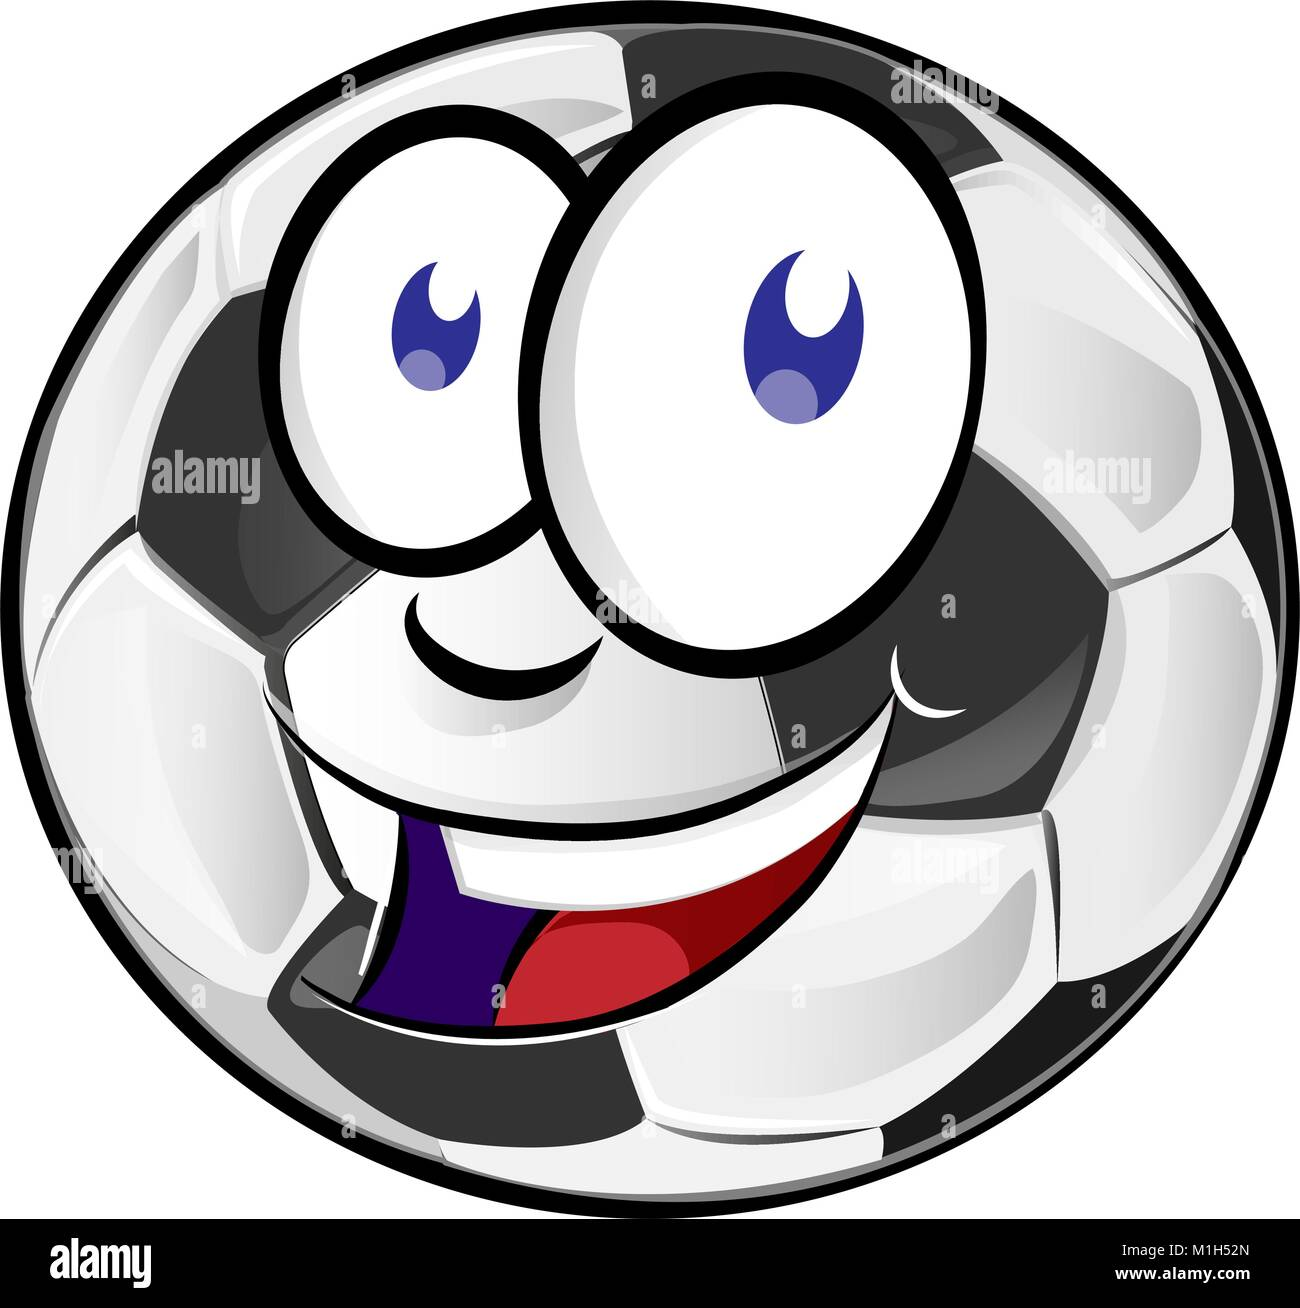 Cartoon Football Man Character Stockfotos & Cartoon ...